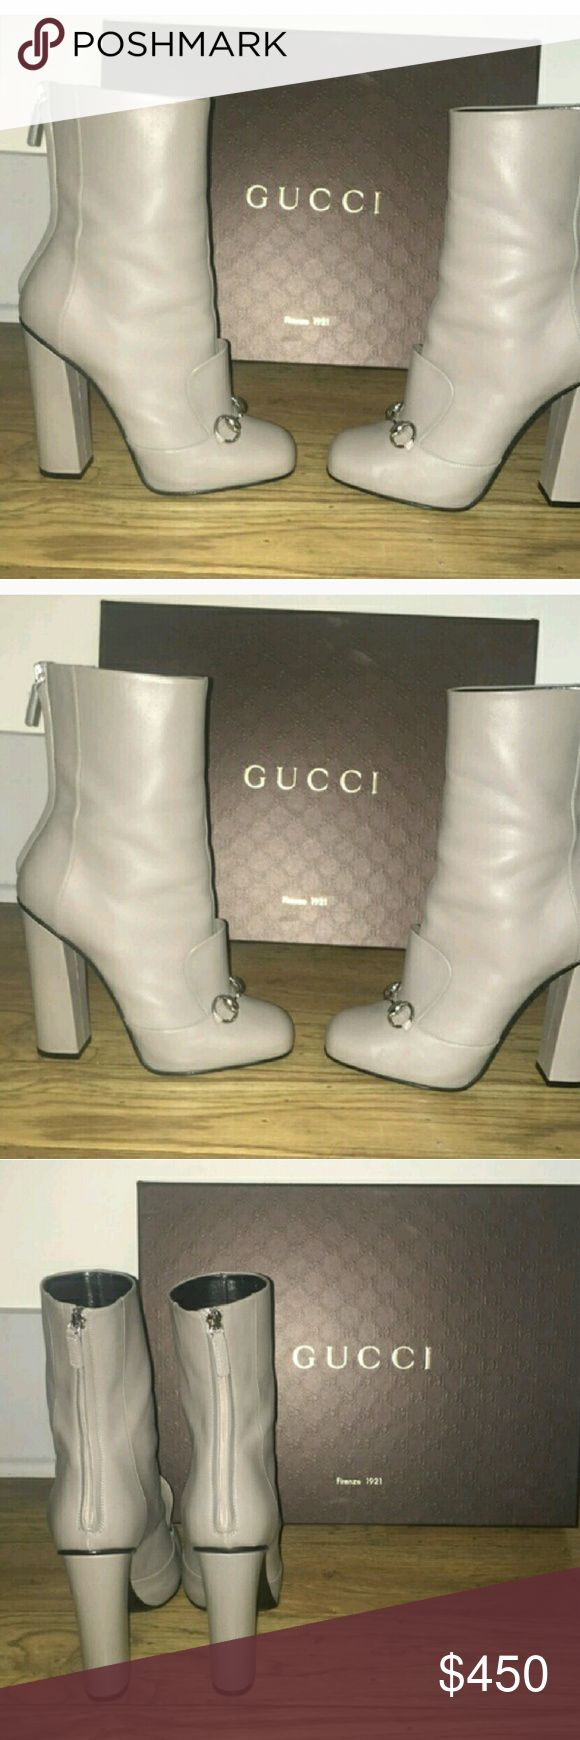 Gucci gray boots bad azz worn 2x Fabulous gray leather...minimal wear and super minor scuffs...has box and dustbag.. Gucci Shoes Heeled Boots